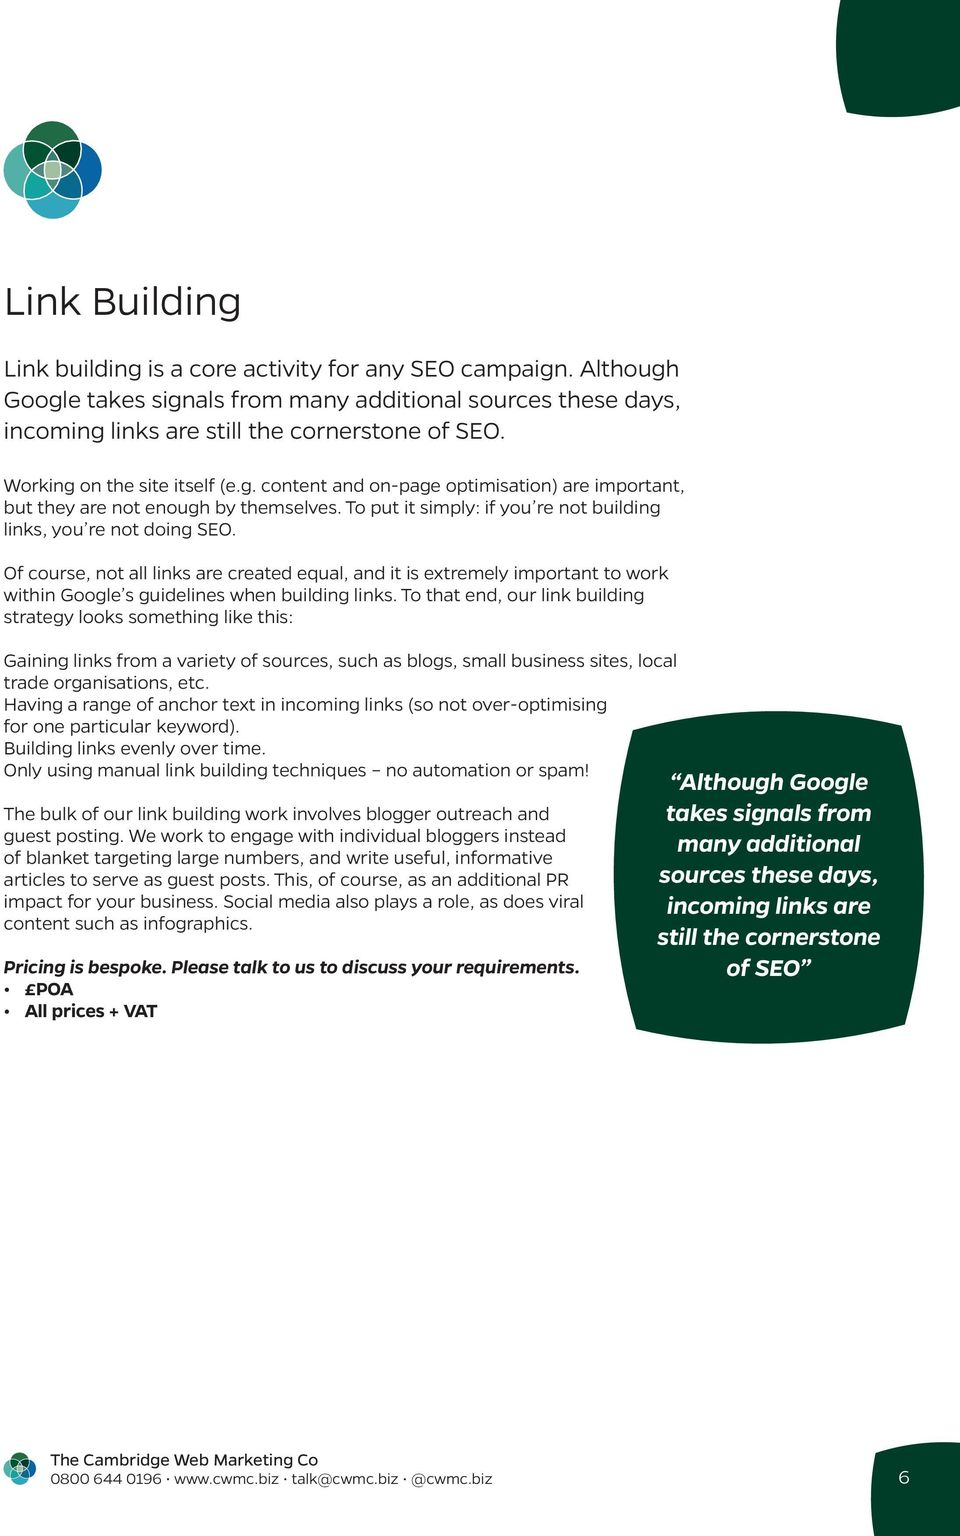 Of course, not all links are created equal, and it is extremely important to work within Google s guidelines when building links.